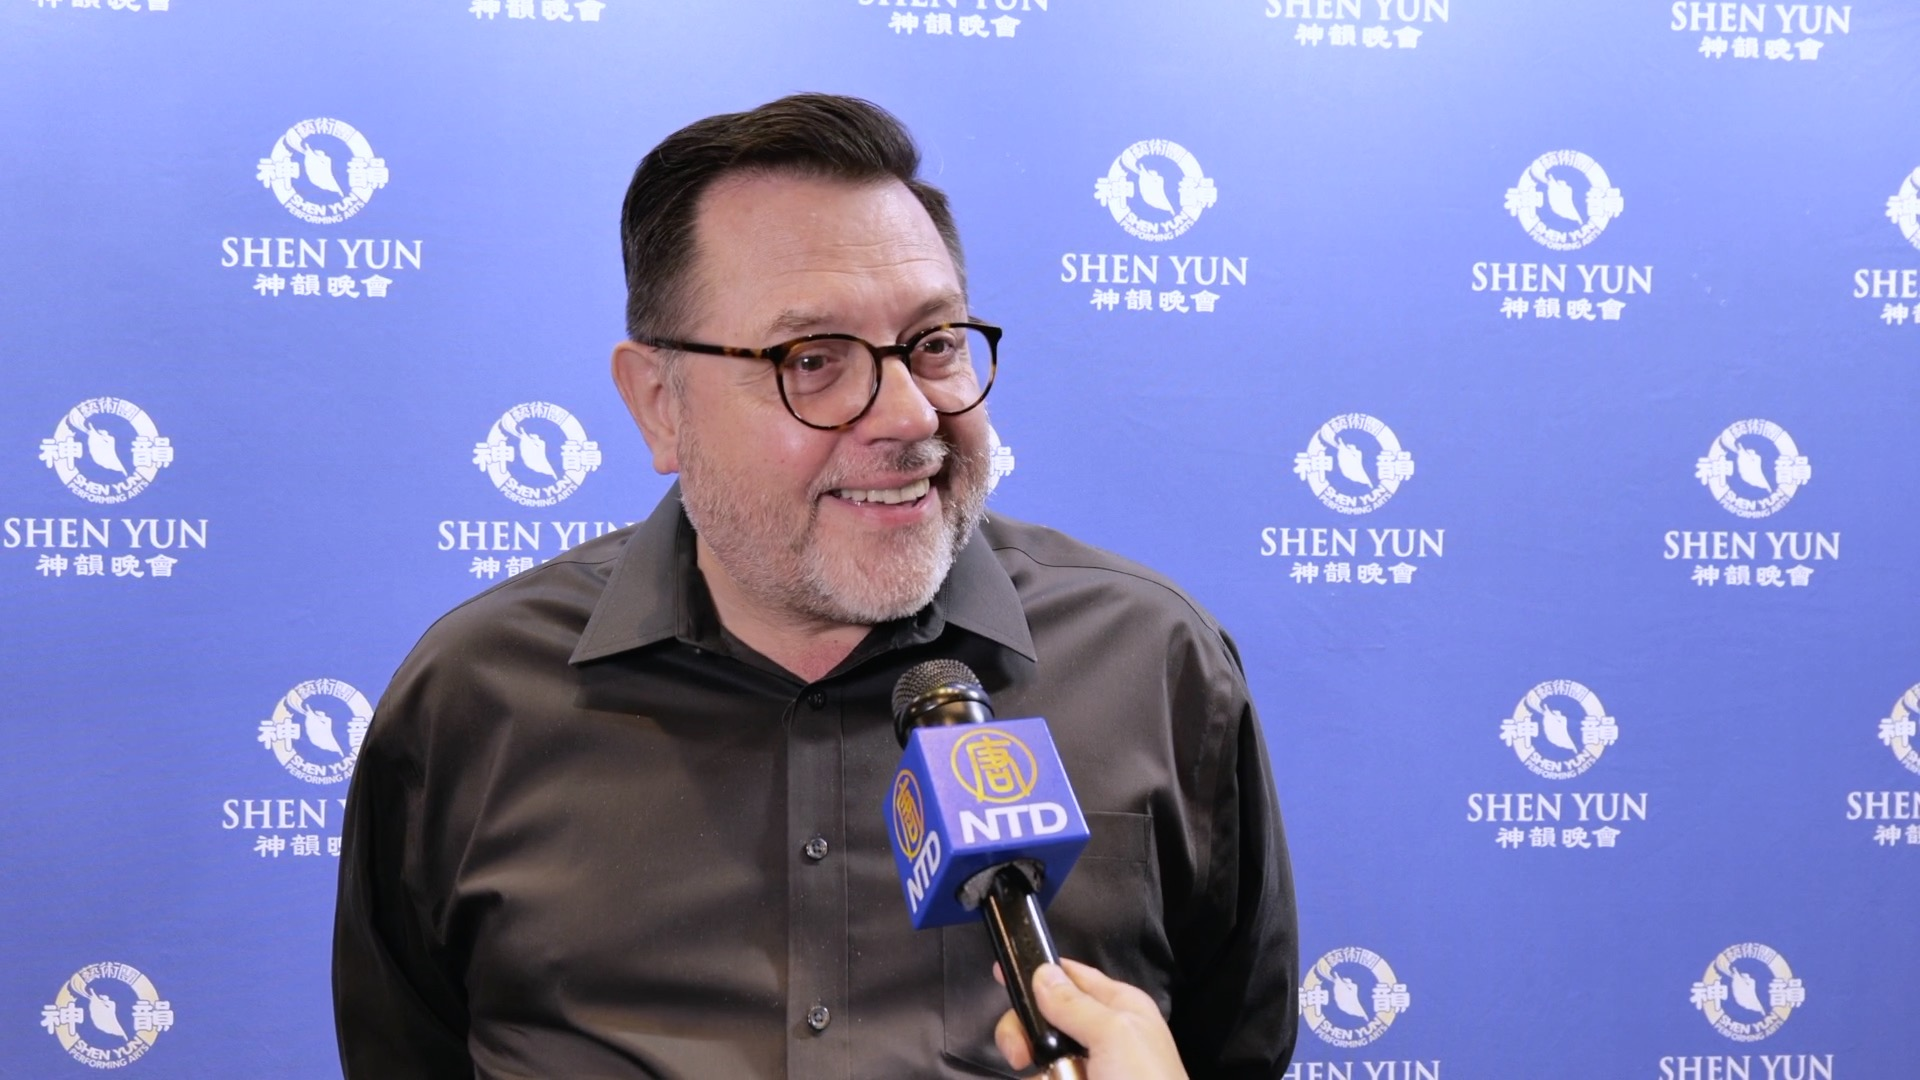 Theater Director: Shen Yun a Treat for the Eye, a Treat for the Heart and Soul